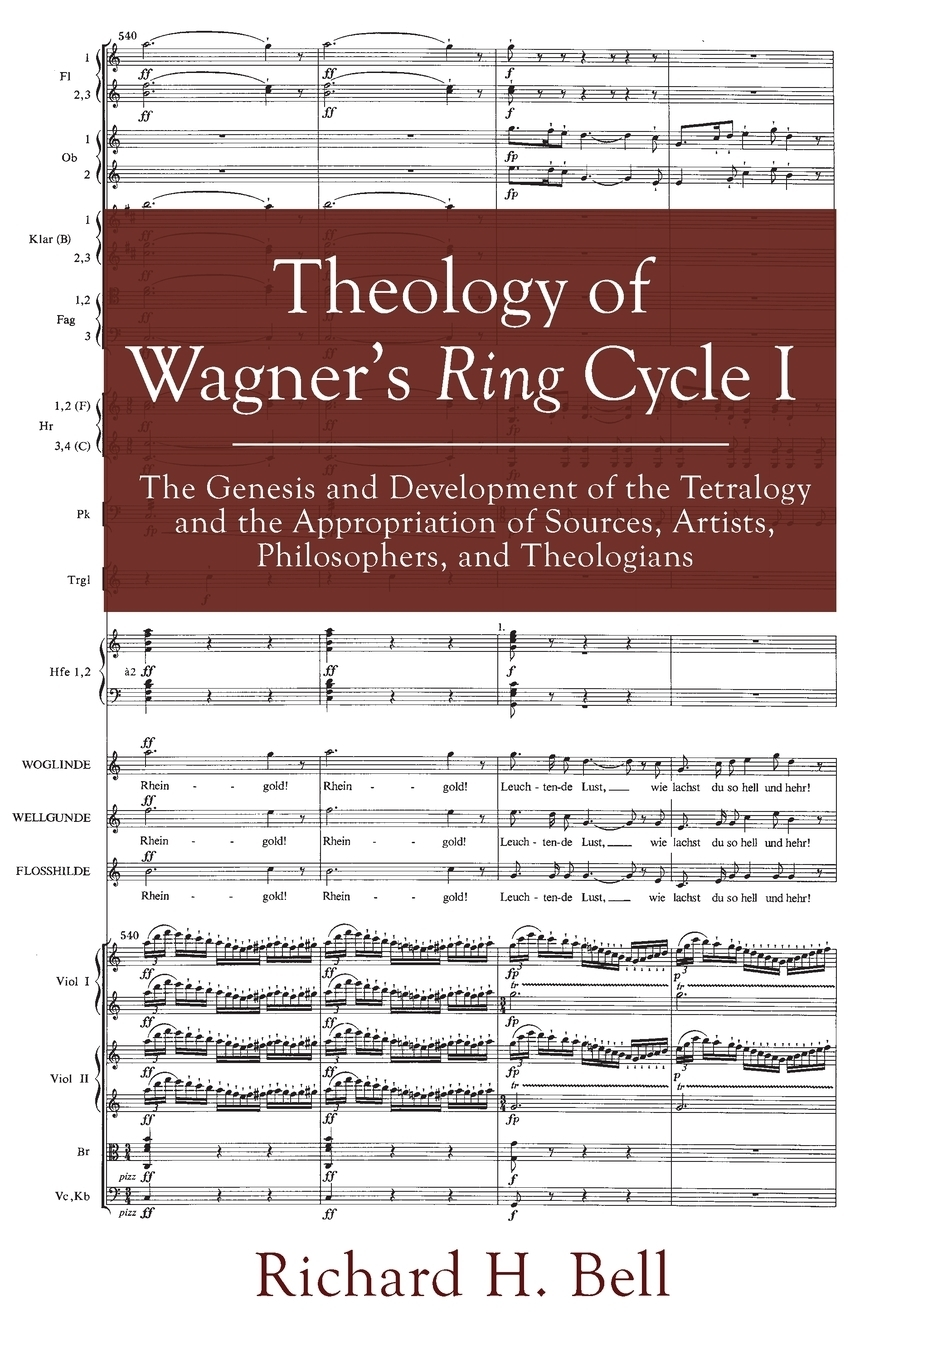 Richard H. Bell. Theology of Wagner's Ring Cycle I. The Genesis and Development of the Tetralogy and the Appropriation of Sources, Artists, Philosophers, and Theologians